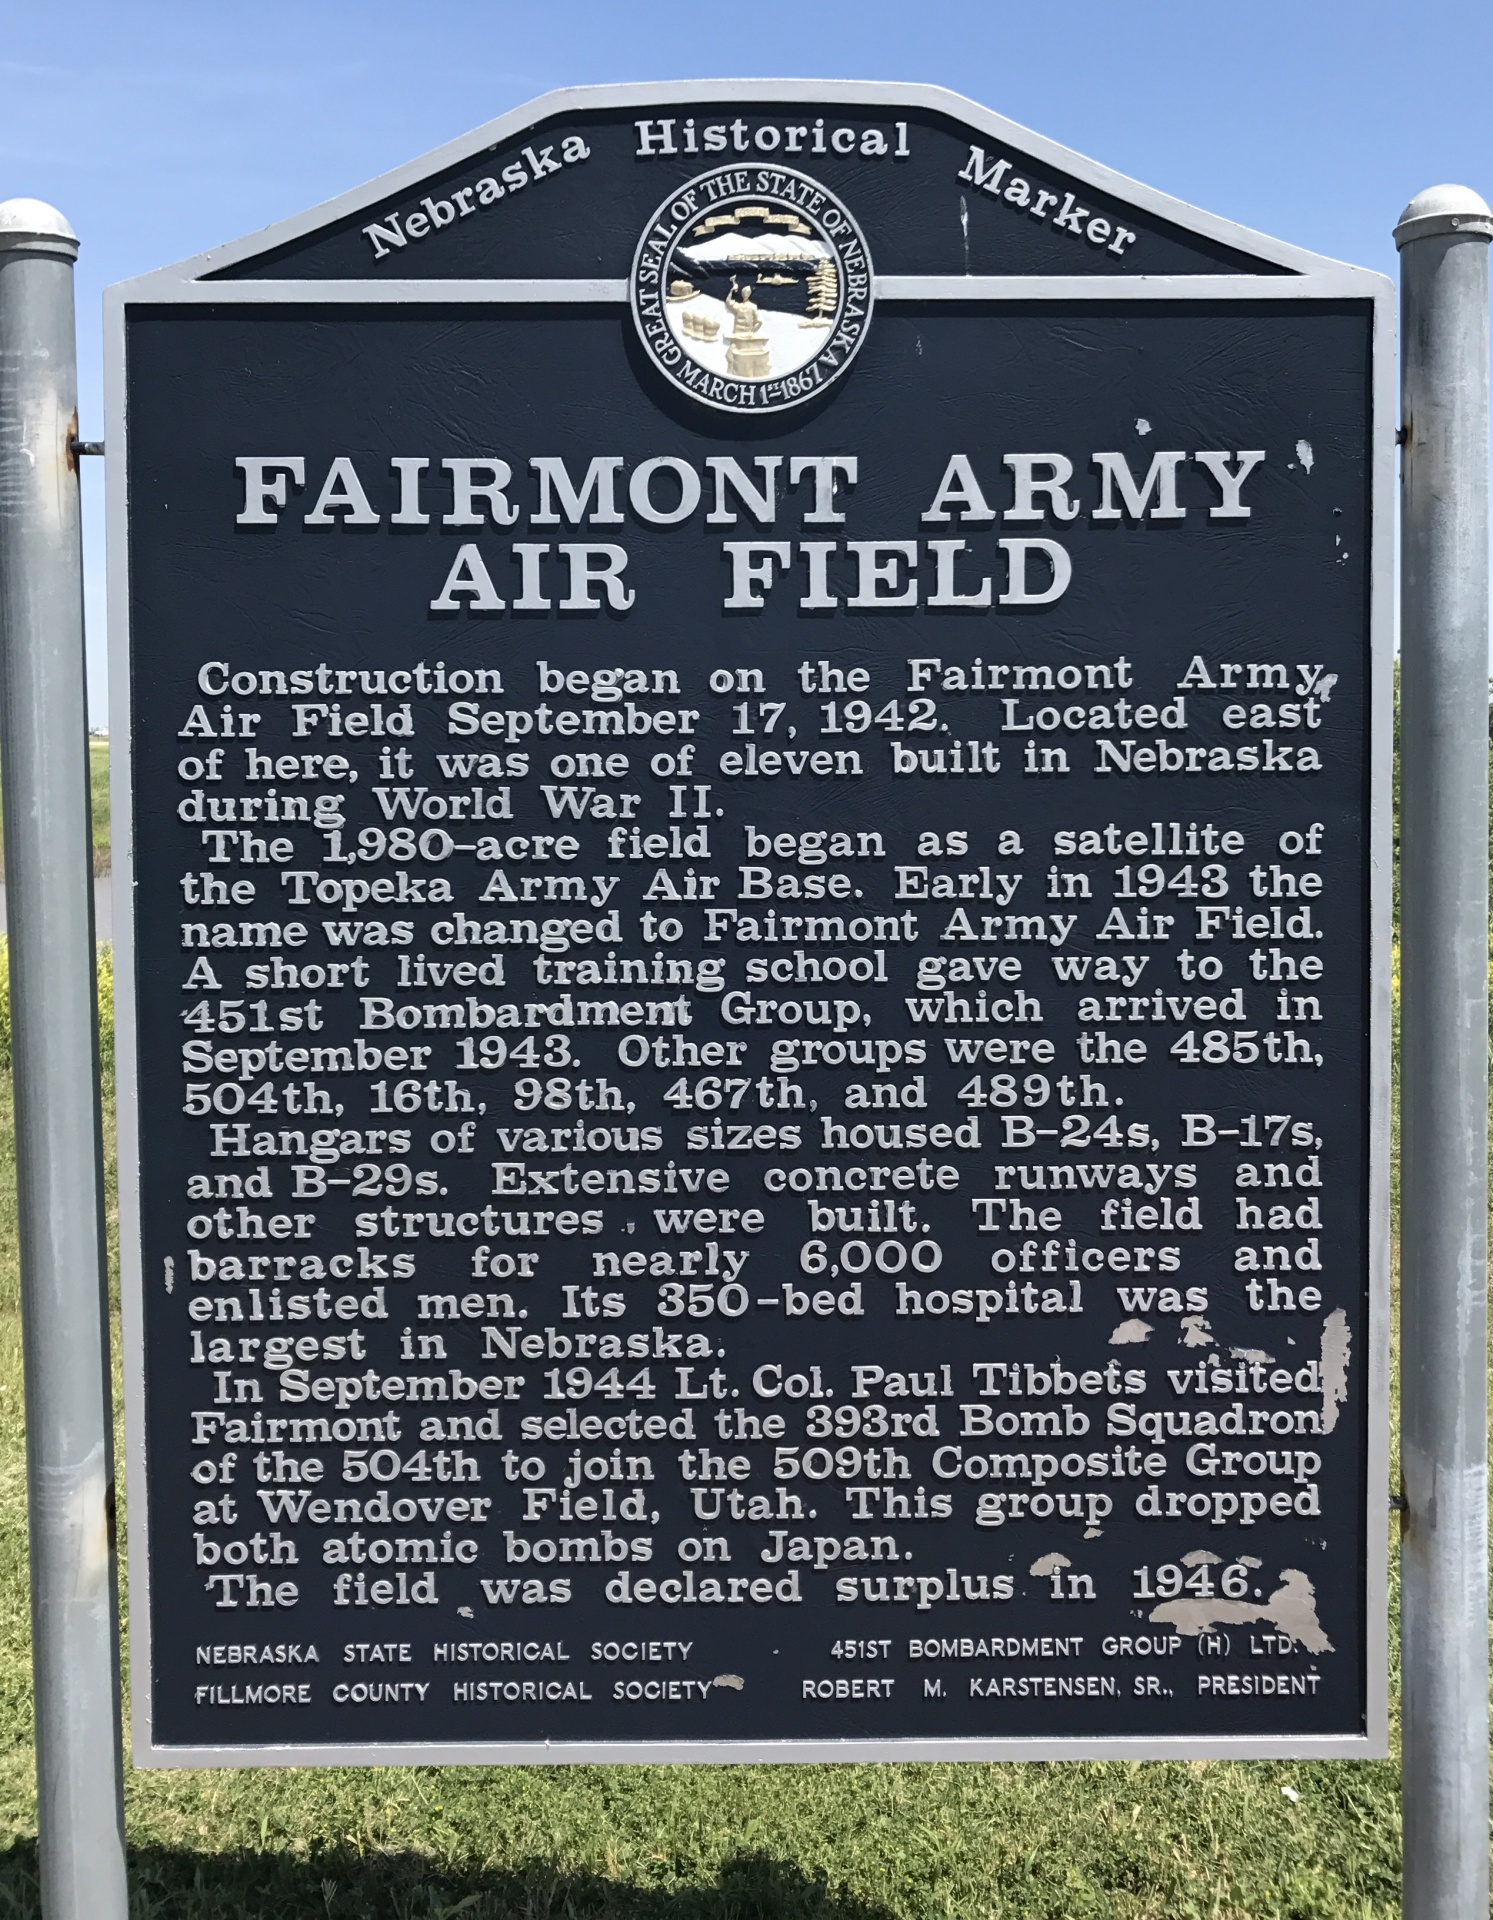 Fairmont Army Air Field - U.S Highway 81